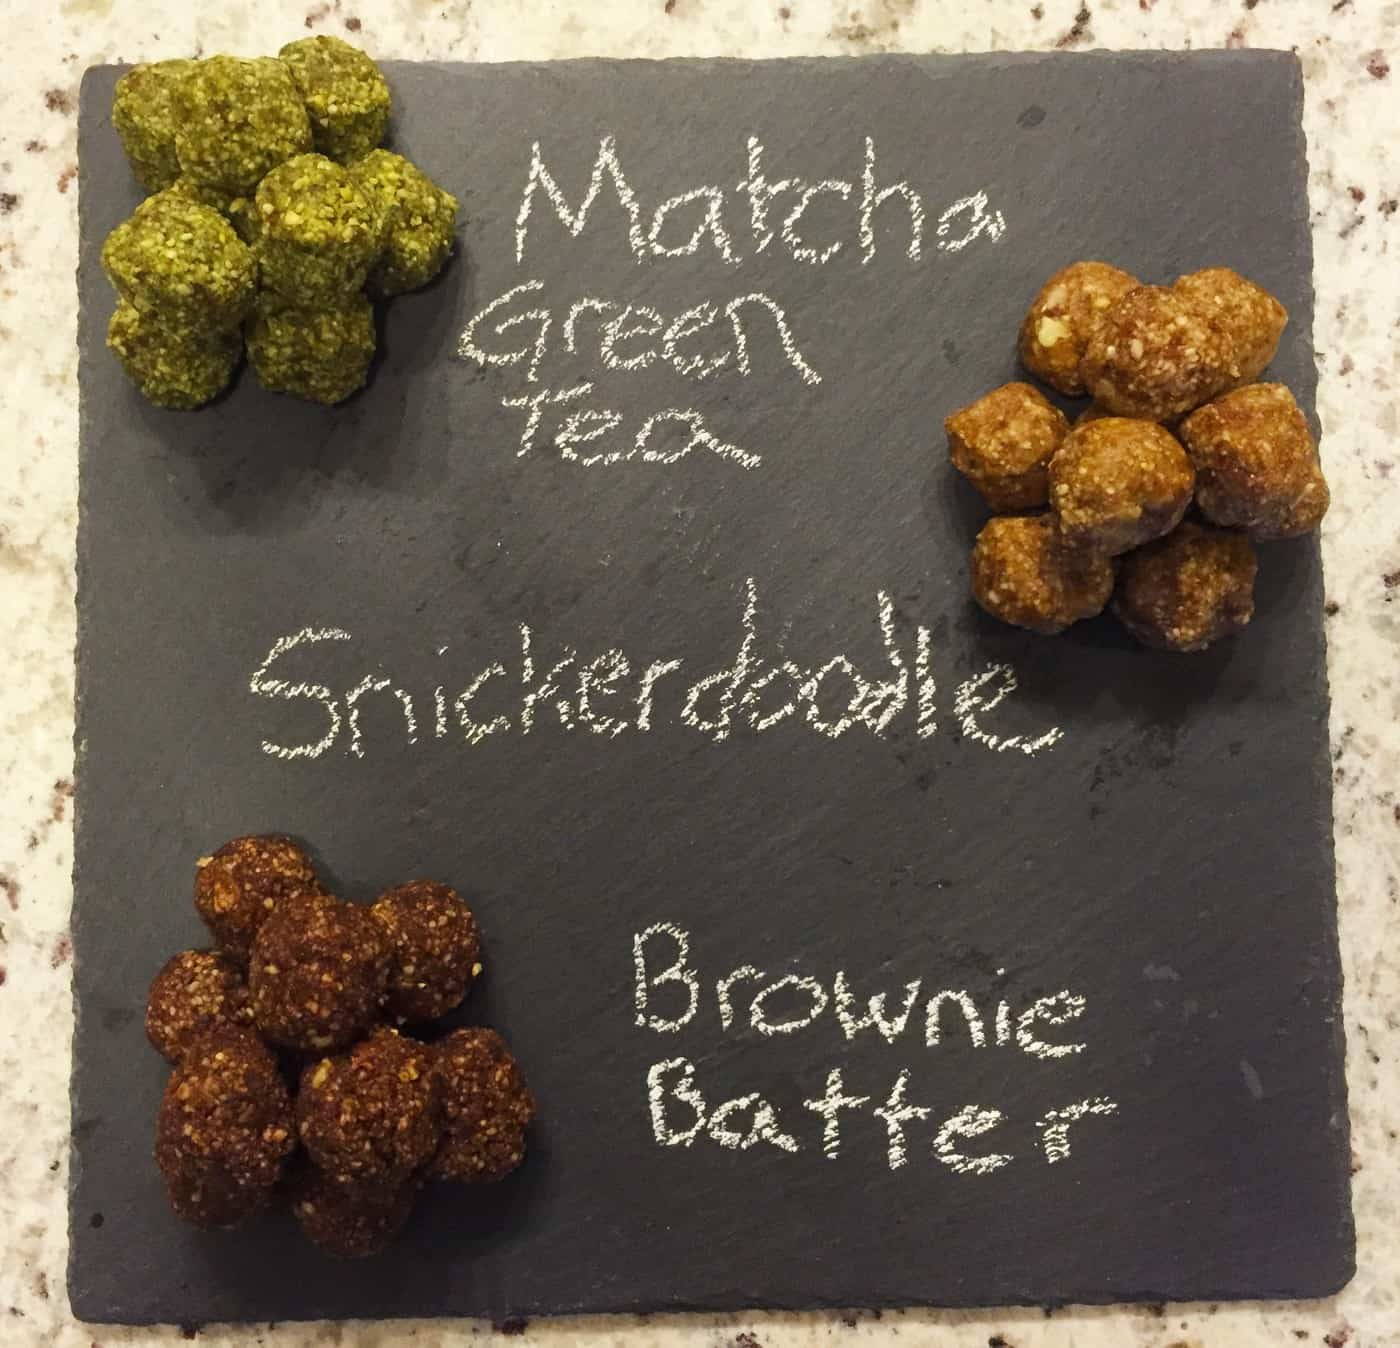 Date Bites 3 Ways: Brownie Batter, Snickerdoodle, and Matcha Green Tea